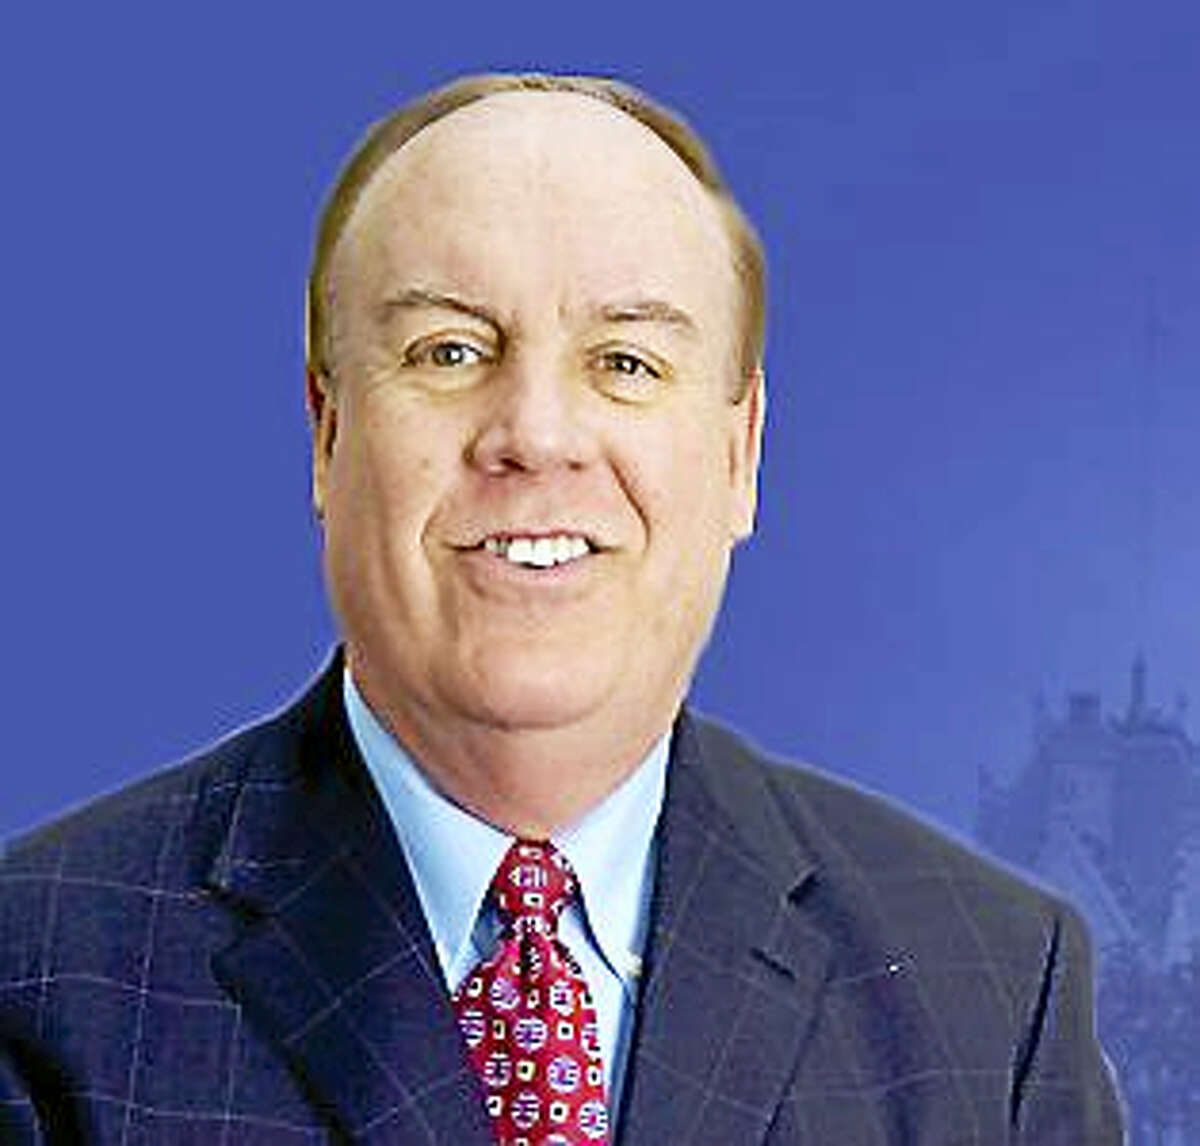 Former state Rep. Stephen Dargan, D-West Haven. (file photo)